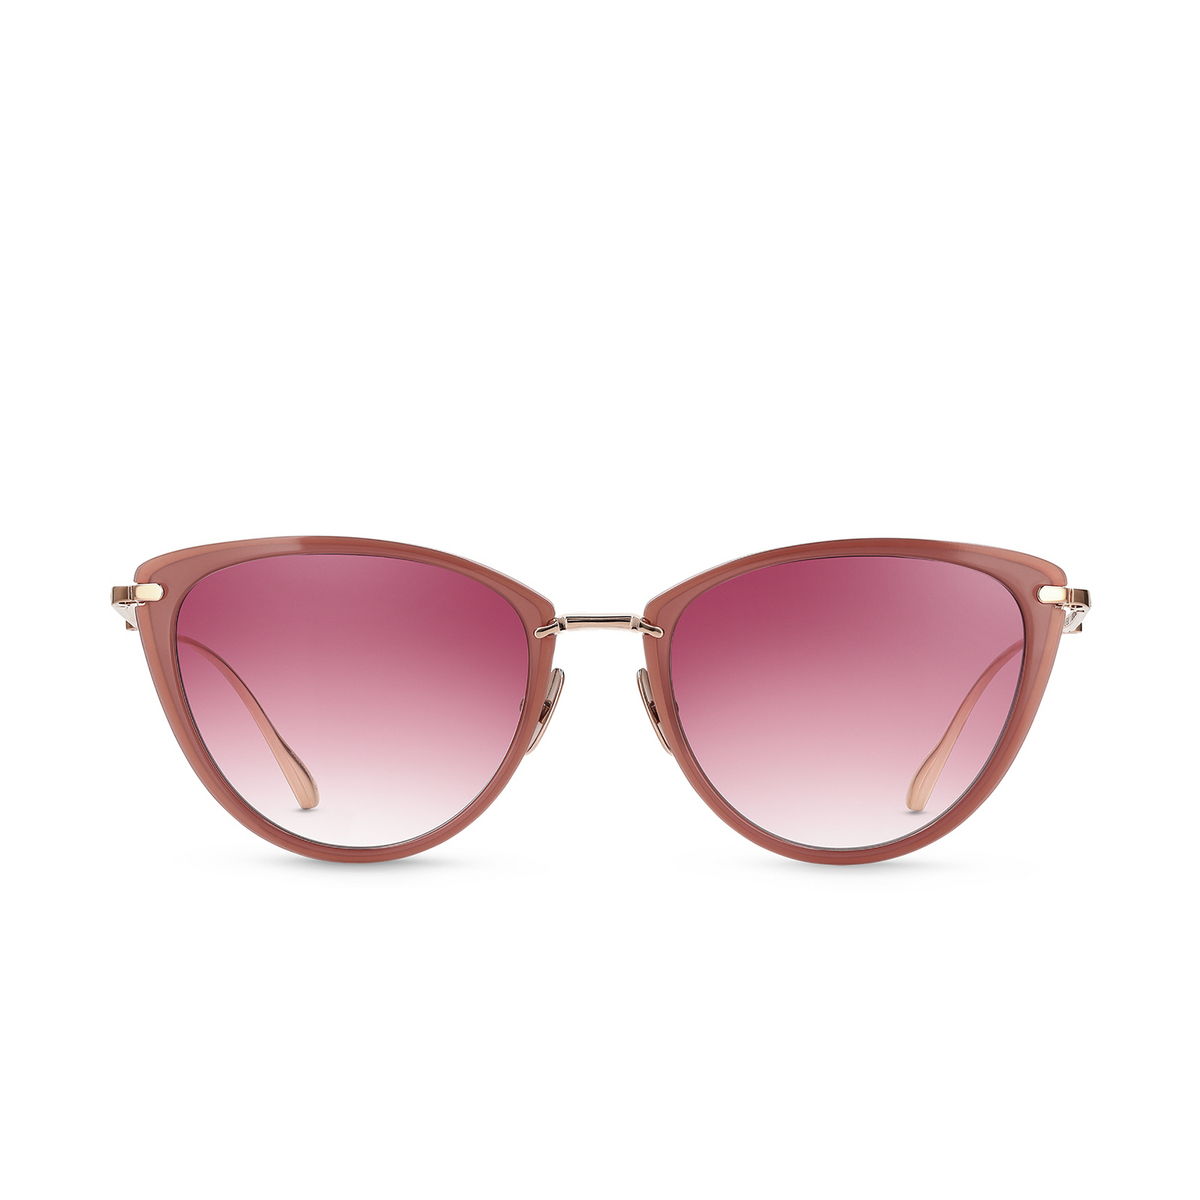 Mr. Leight® Butterfly Sunglasses: Beverly S color RW-18KRG/SG.